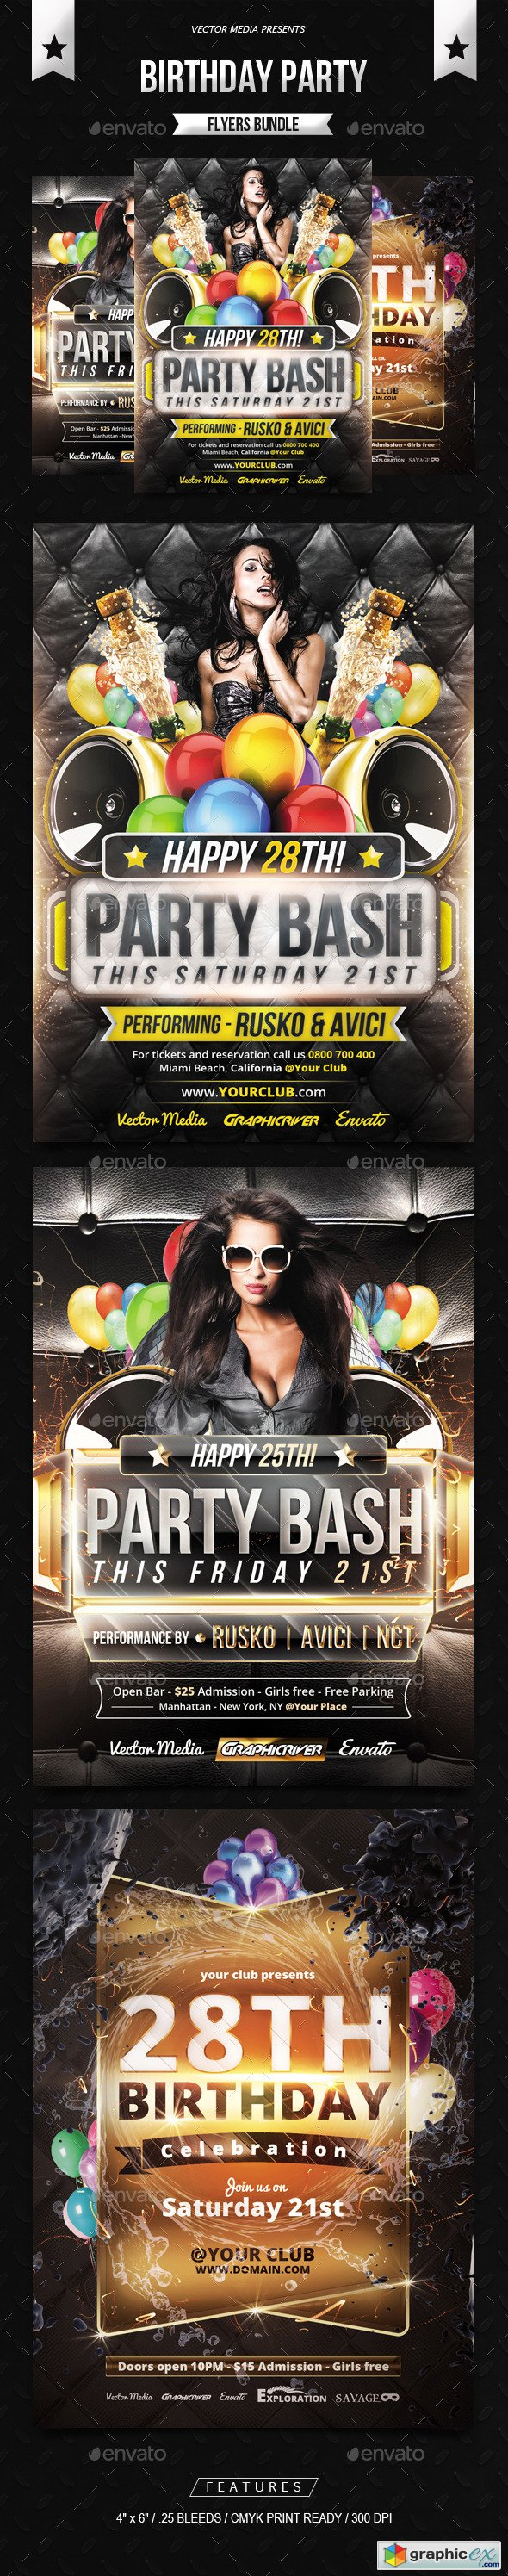 Birthday Party  Flyers Bundle  Graphic Design